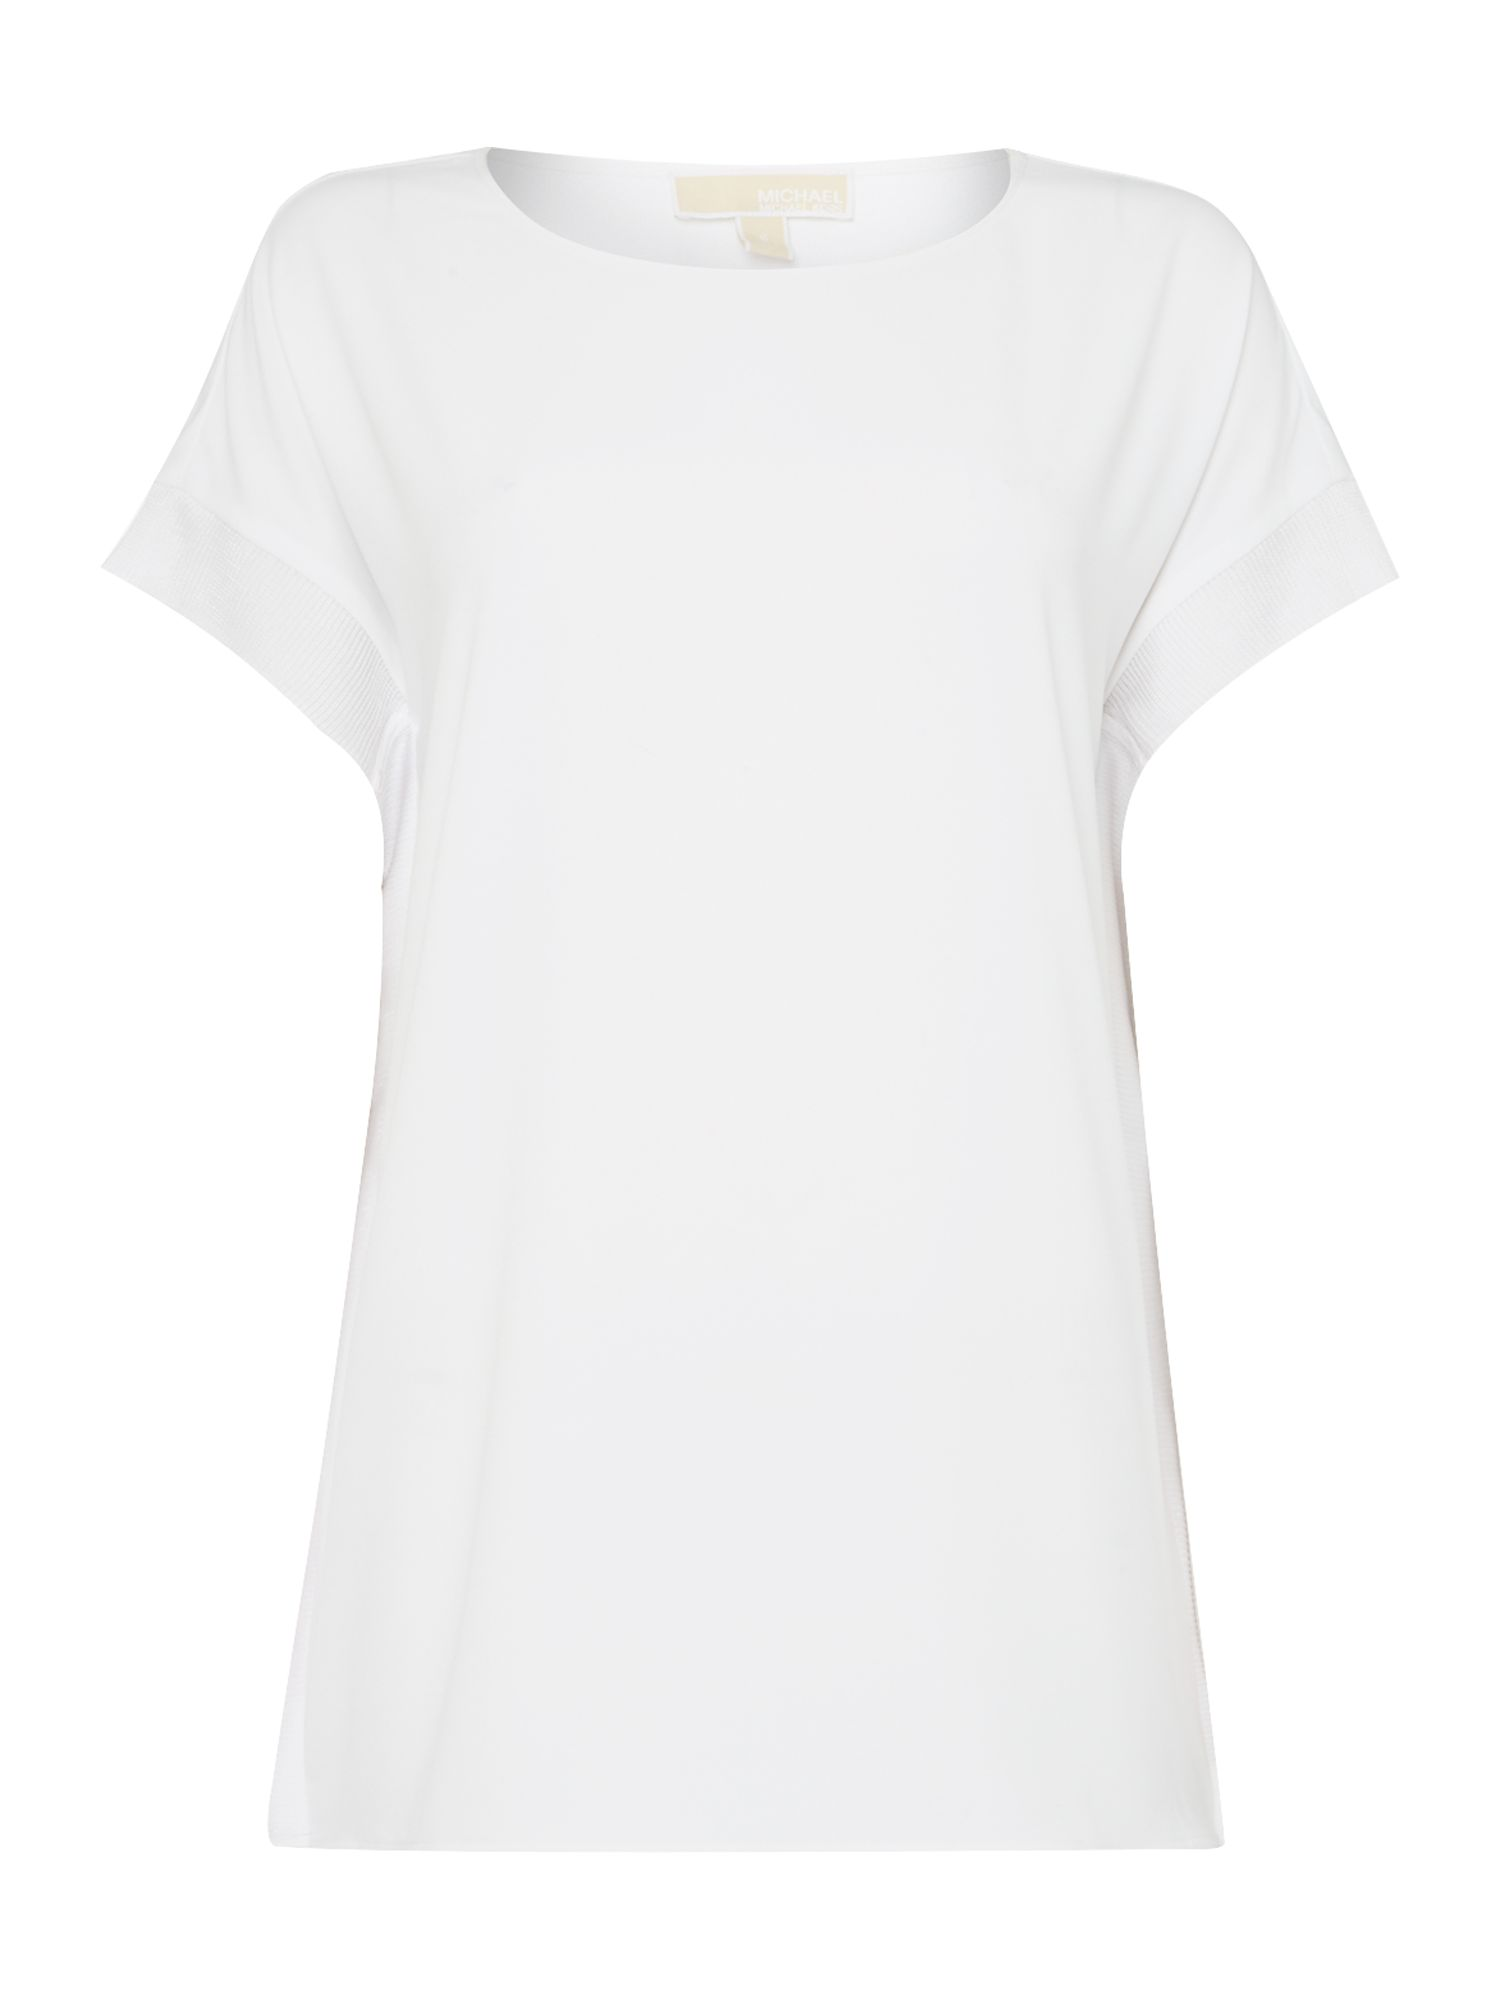 Michael Kors Short Sleeve Scoop Neck Rib Top, White